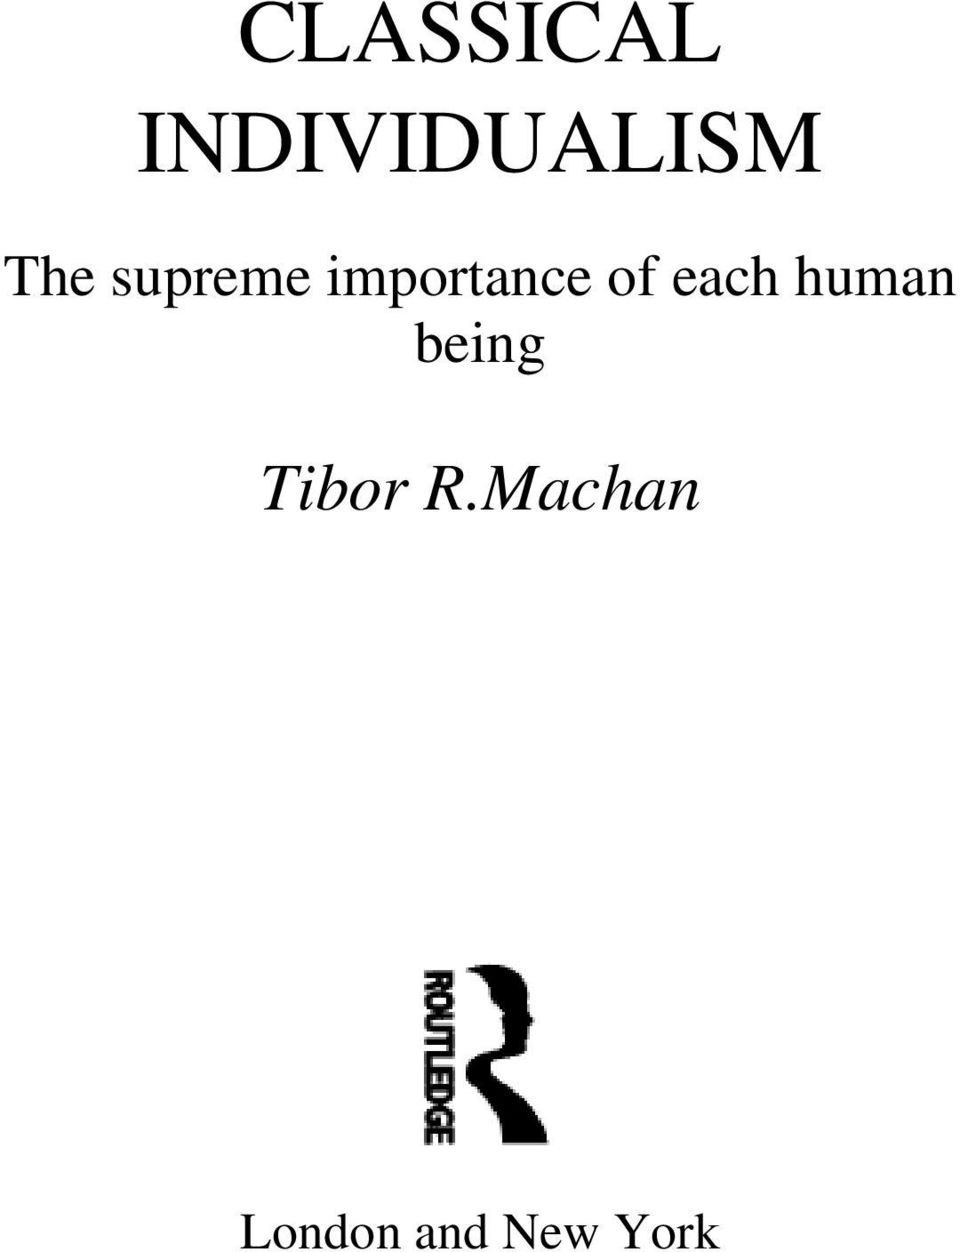 each human being Tibor R.